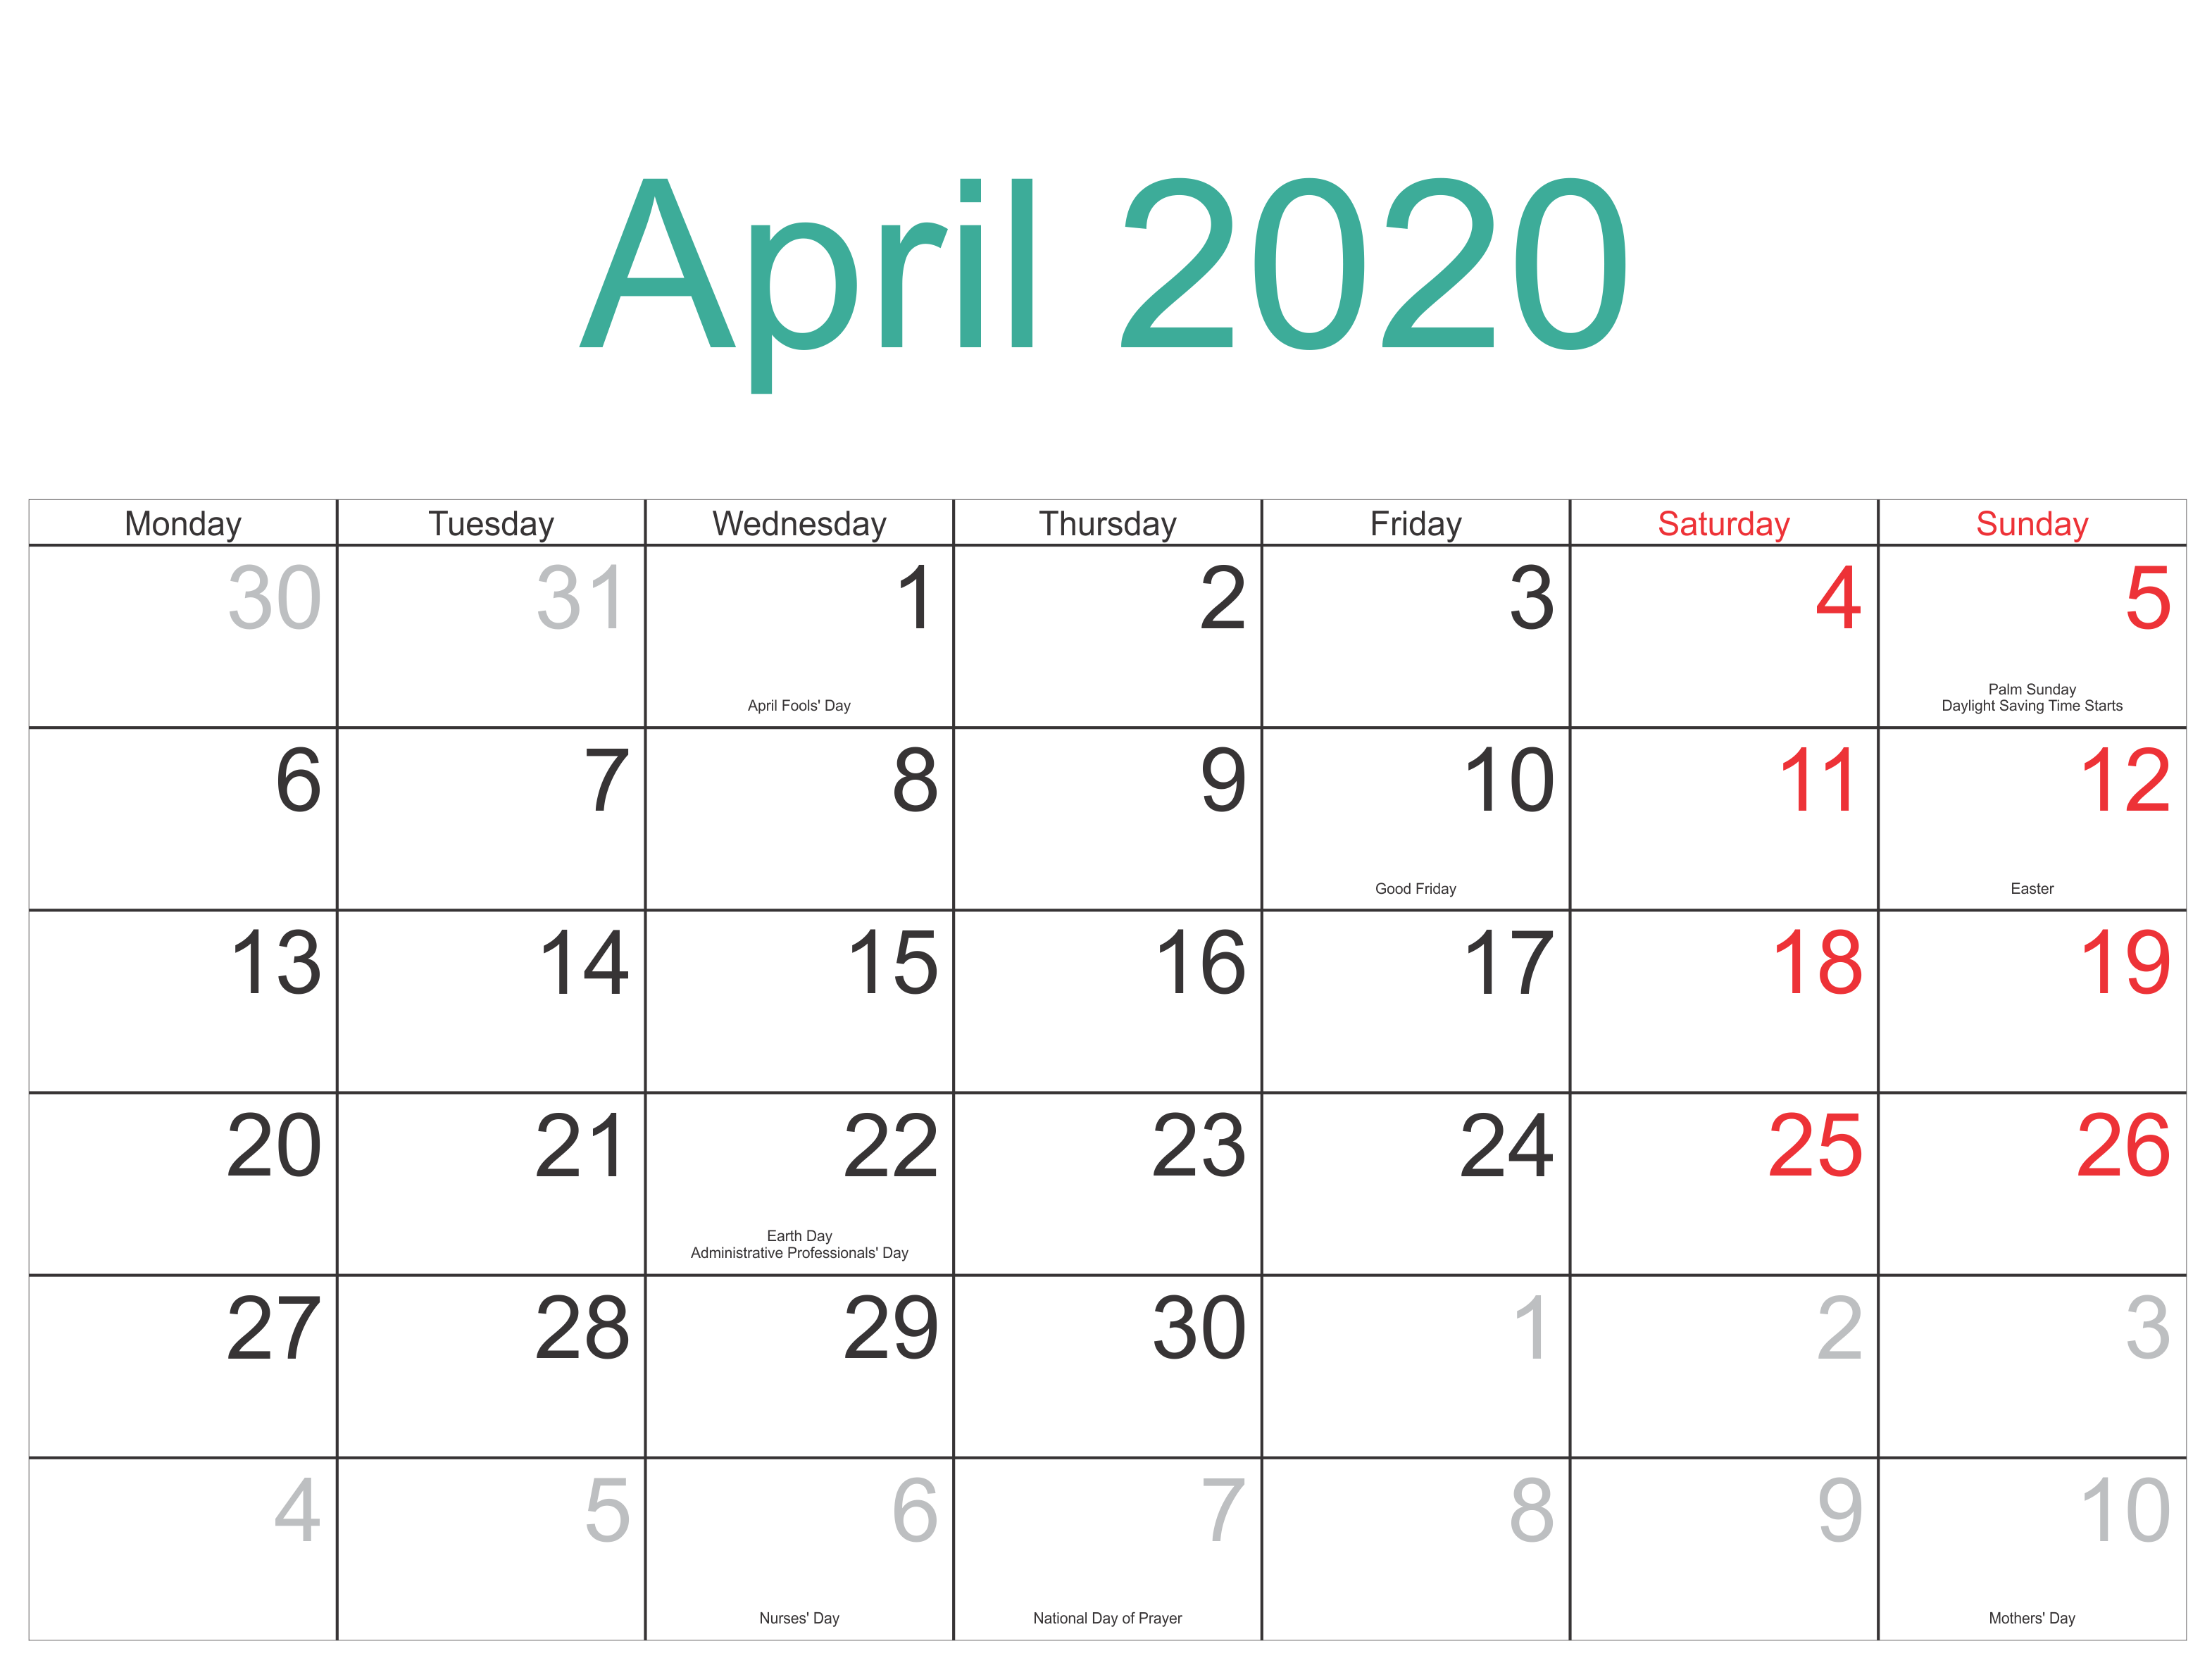 April 2020 Calendar With Holidays usa